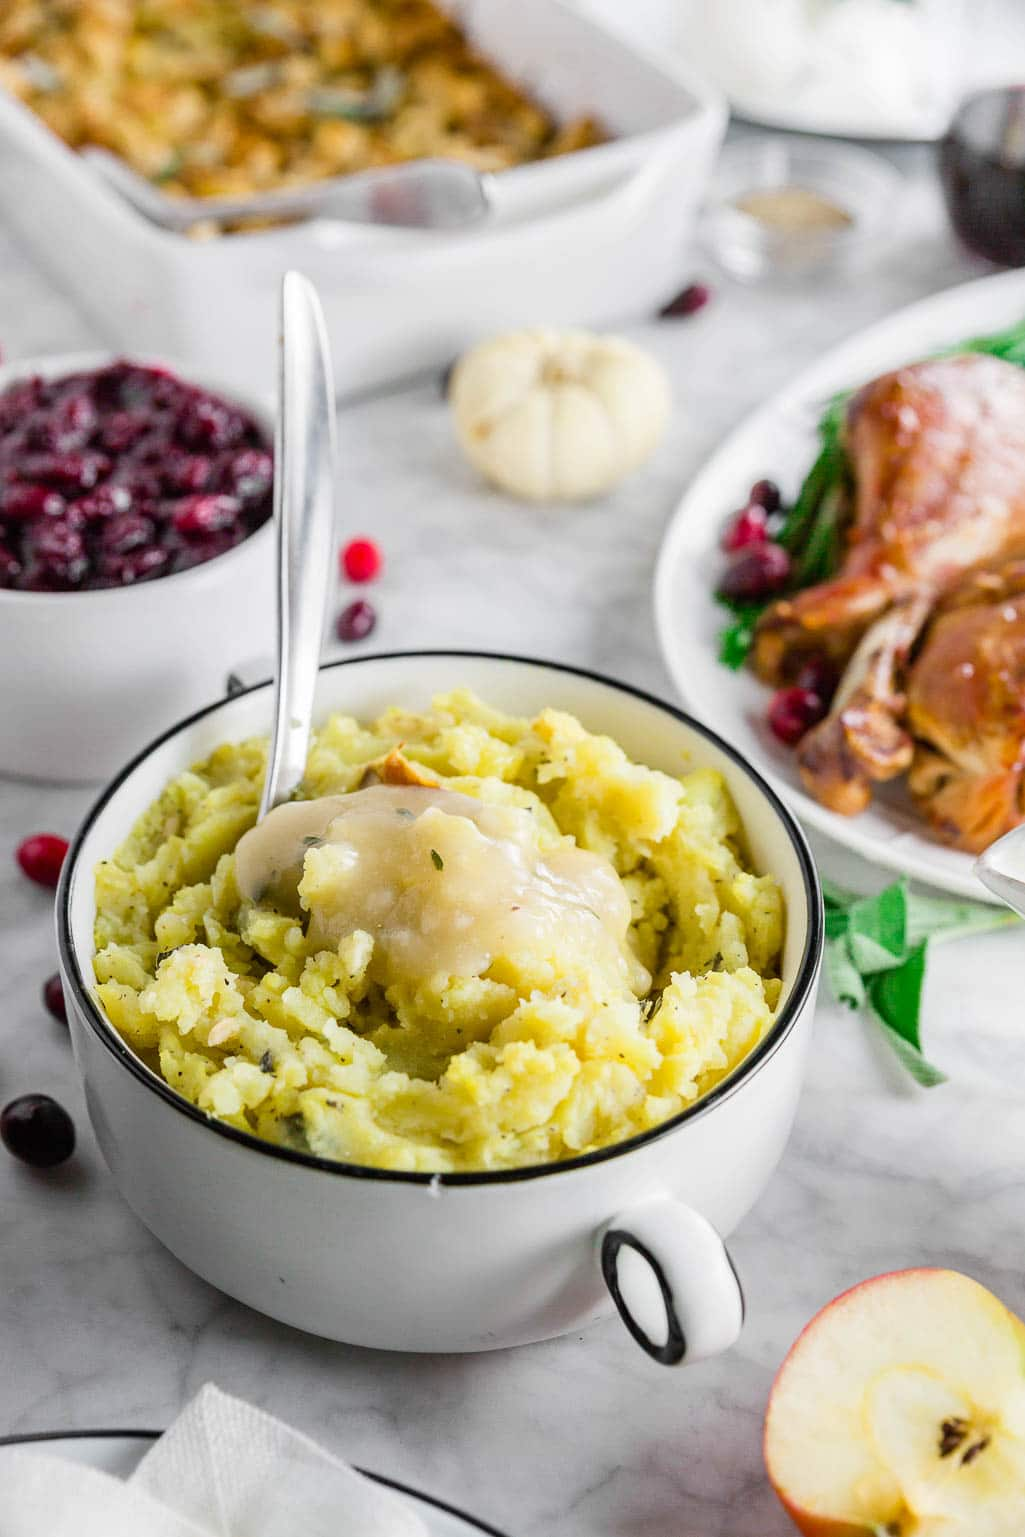 A gluten-free thanksgiving table with roasted garlic mashed potatoes, turkey, stuffing and cranberry sauce.